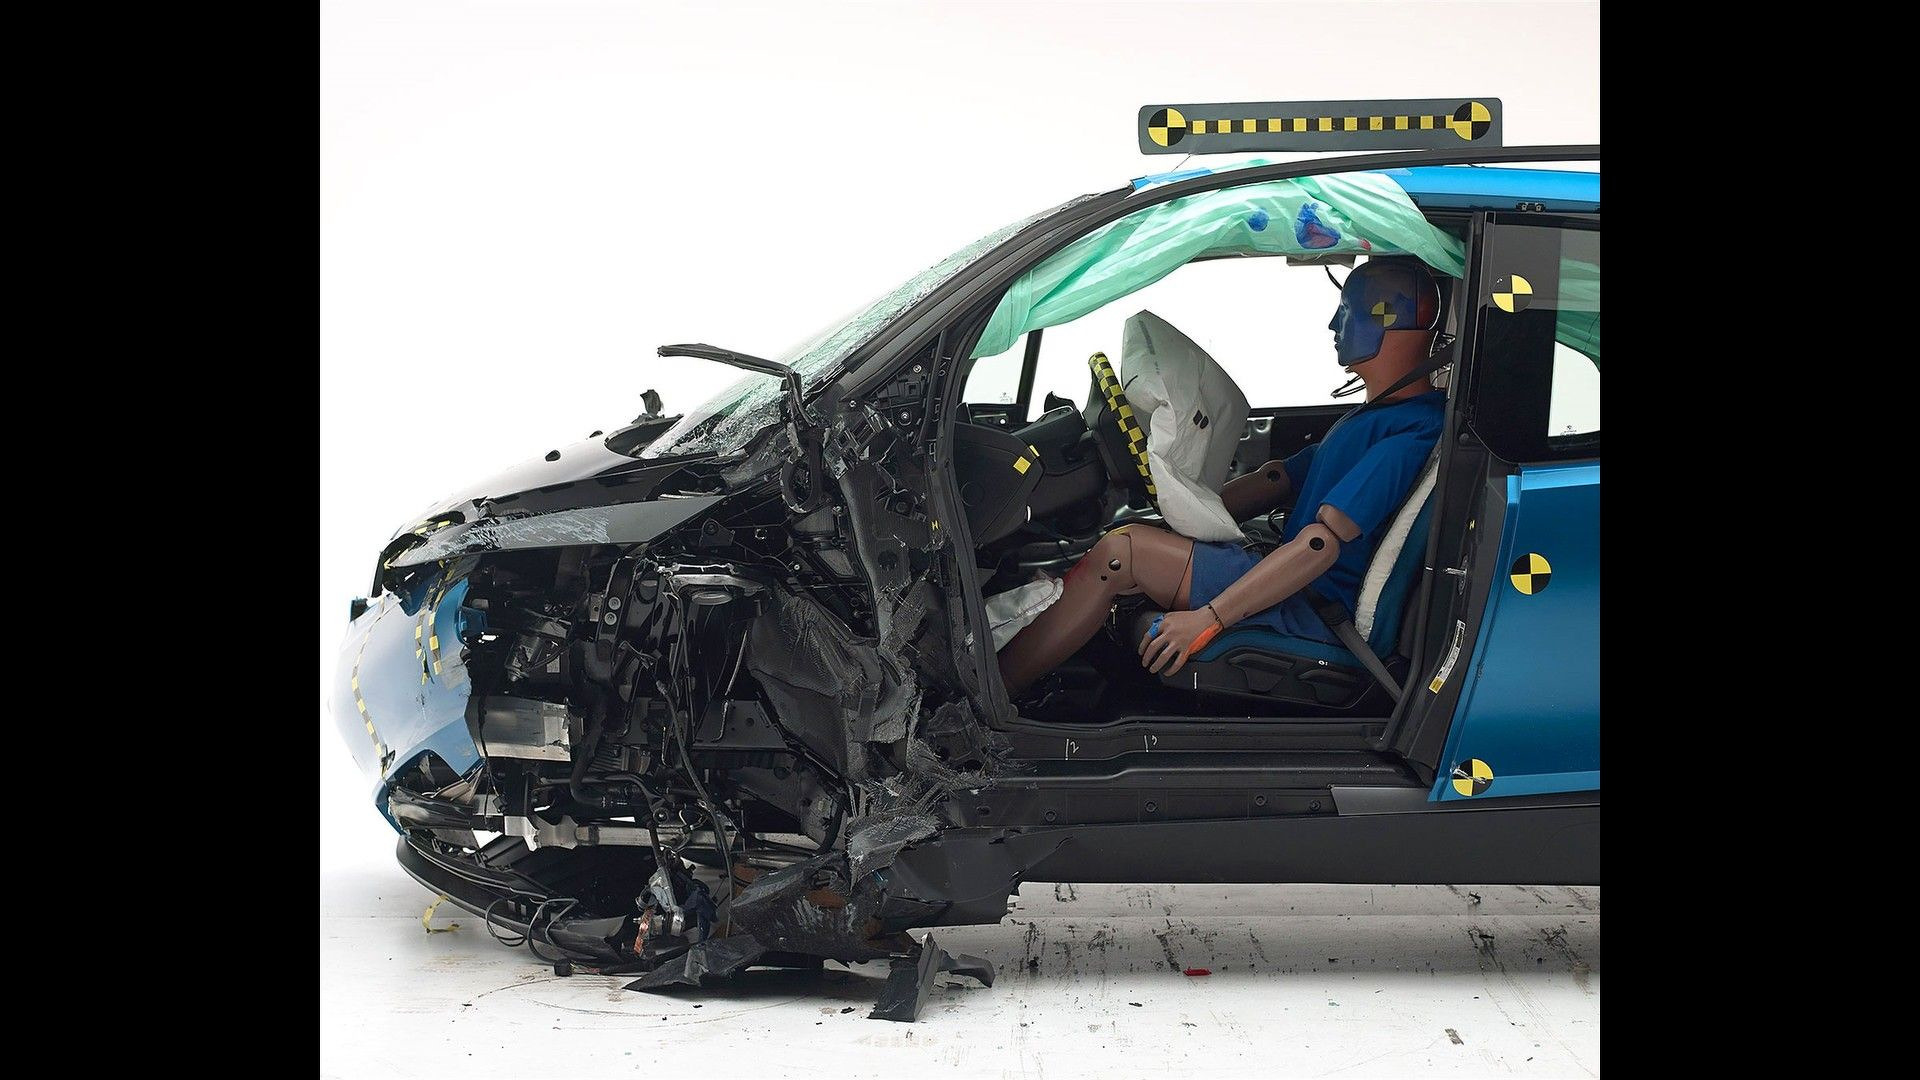 bmw-i3-crash-results (2)